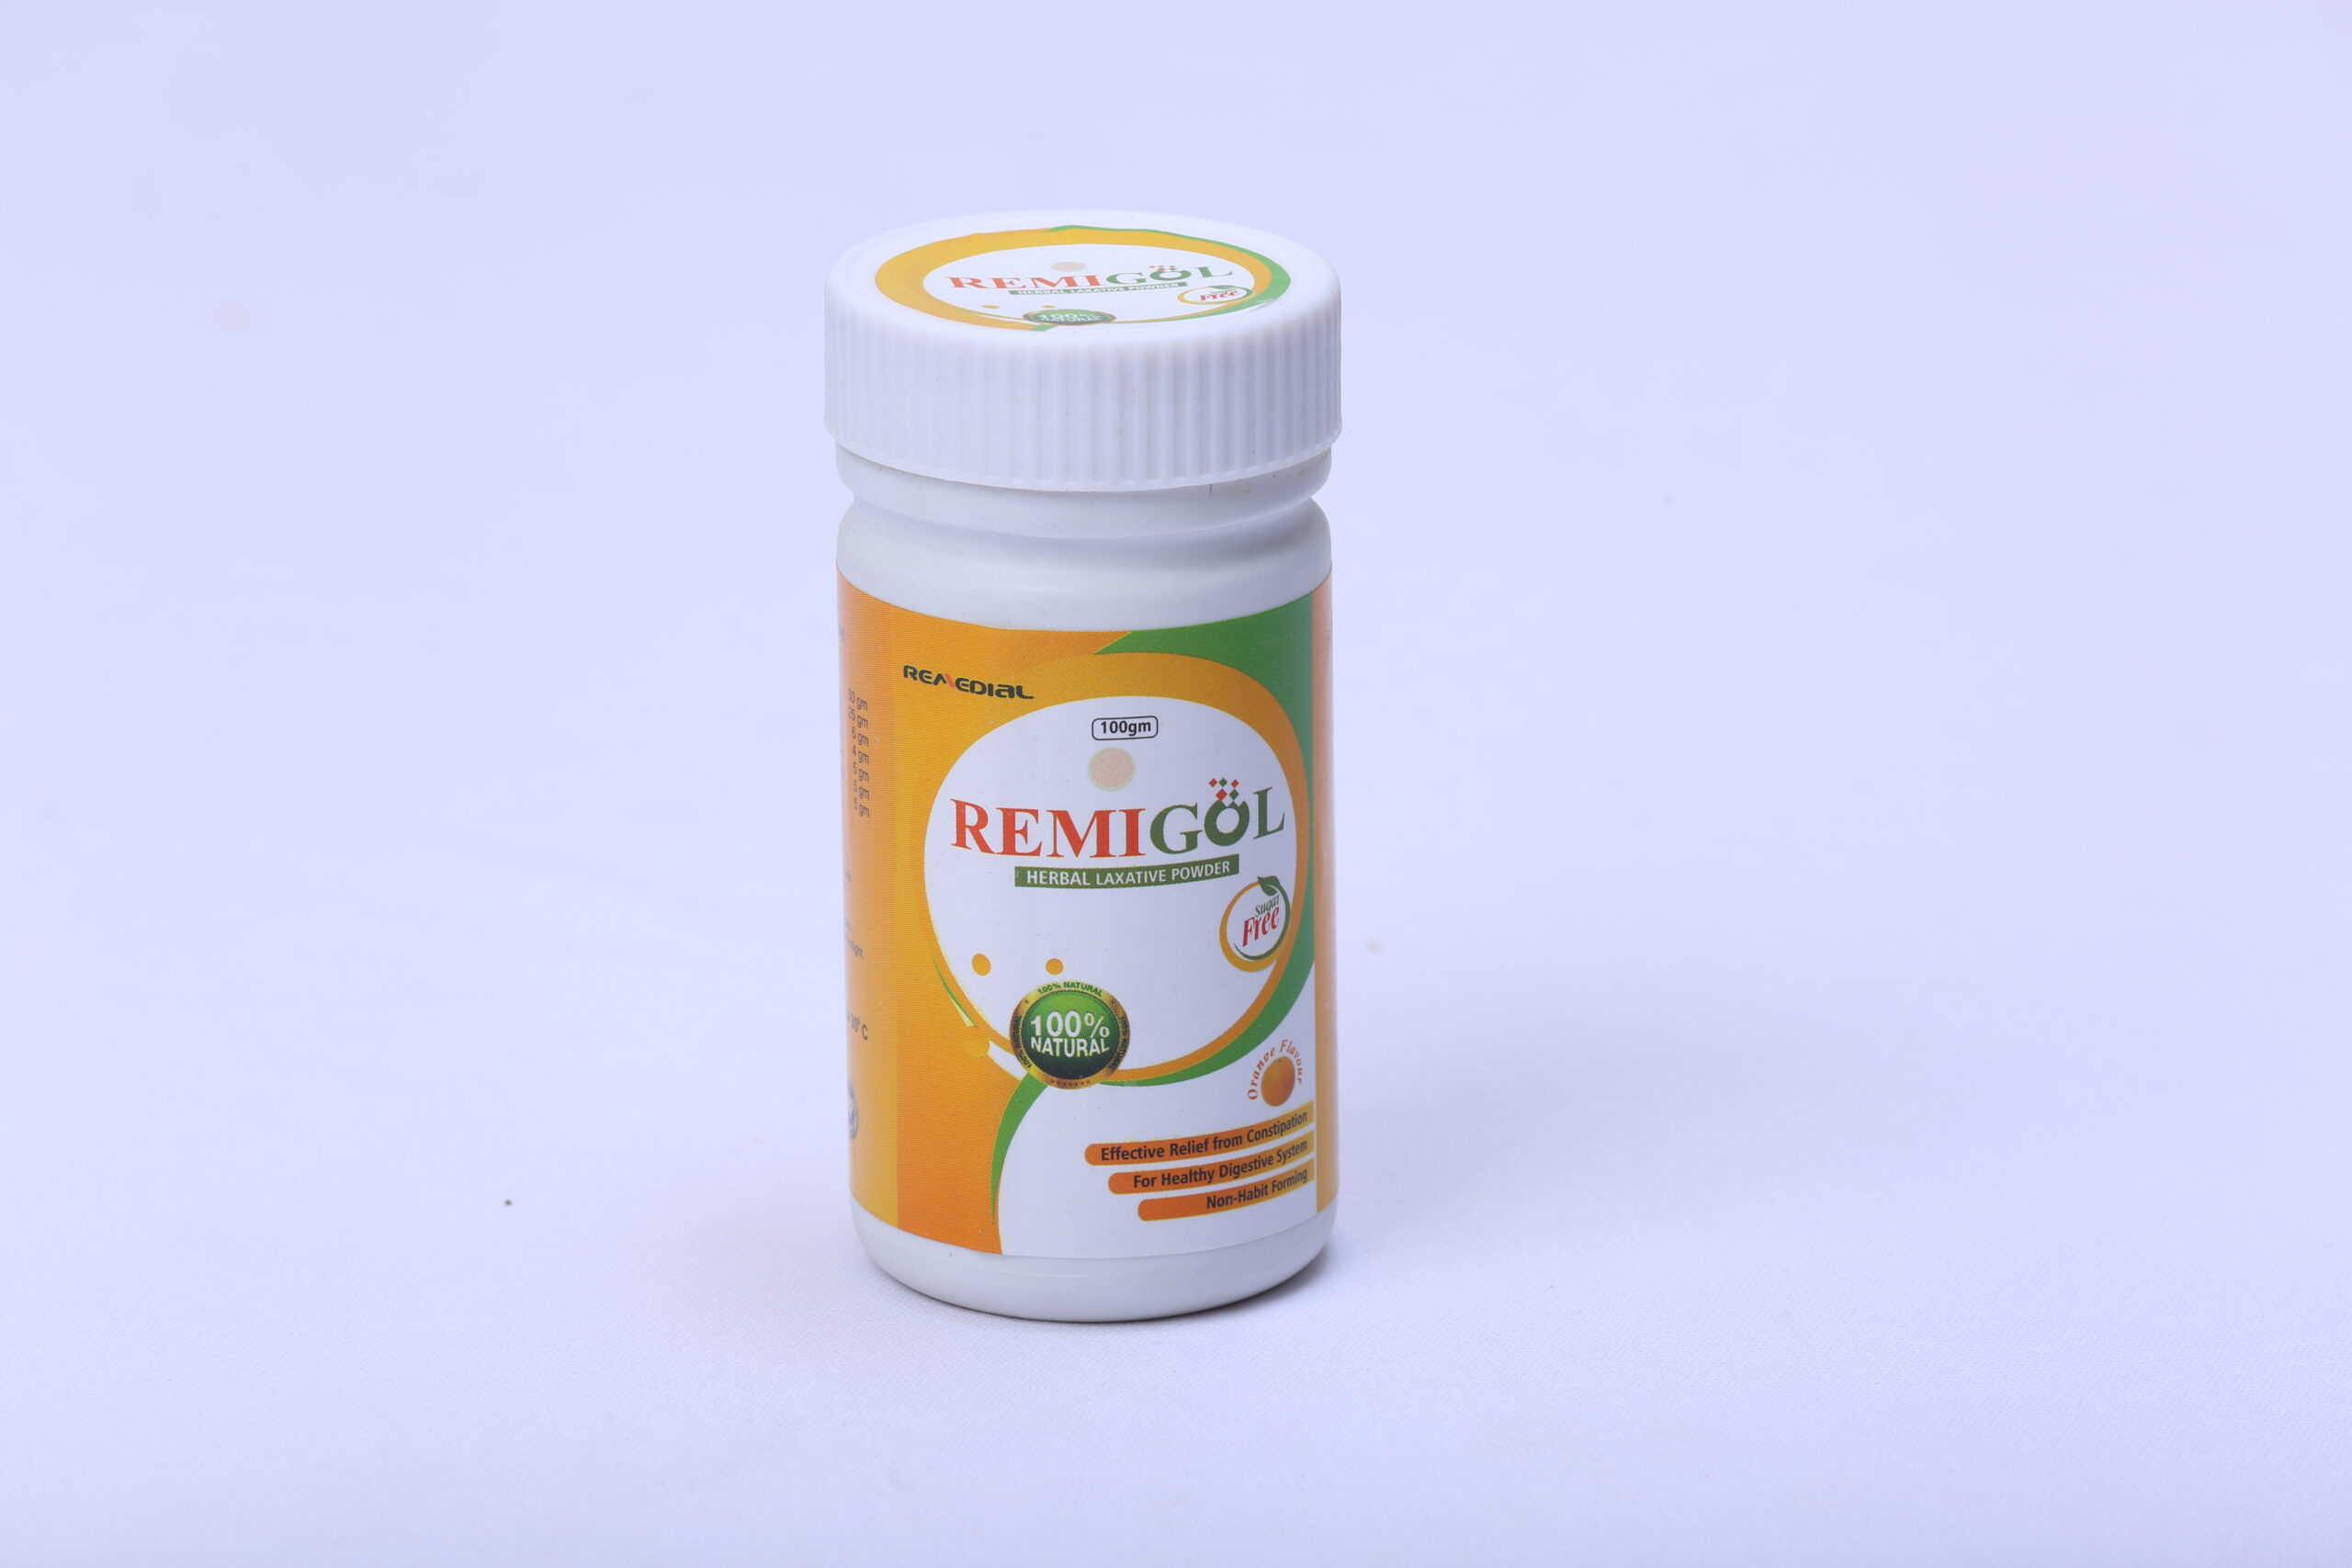 REMIGOL POWDER (Herbal Laxative Powder)